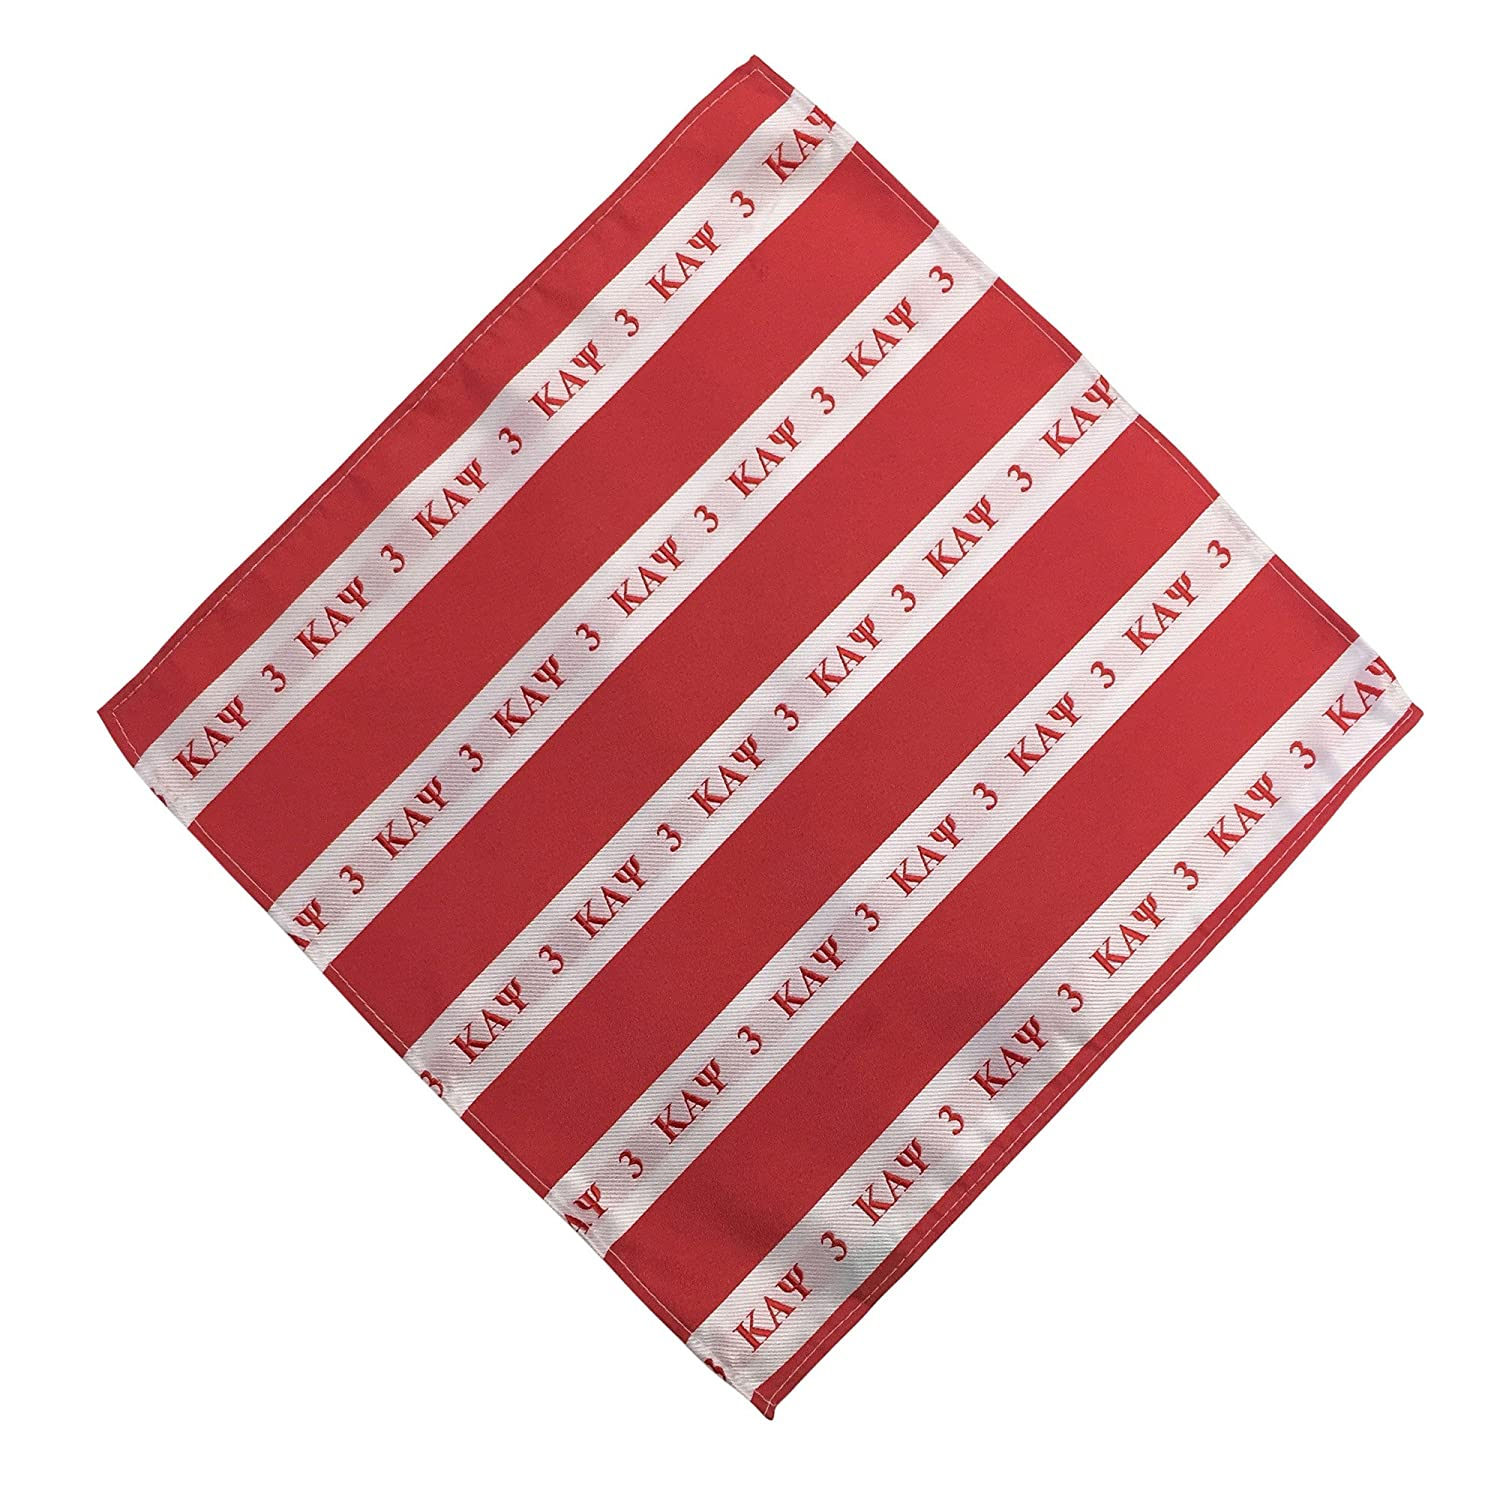 #3 - Hanky Kappa Alpha Psi Hanky Fraternity Greek Formal Occasion Standard Length Width